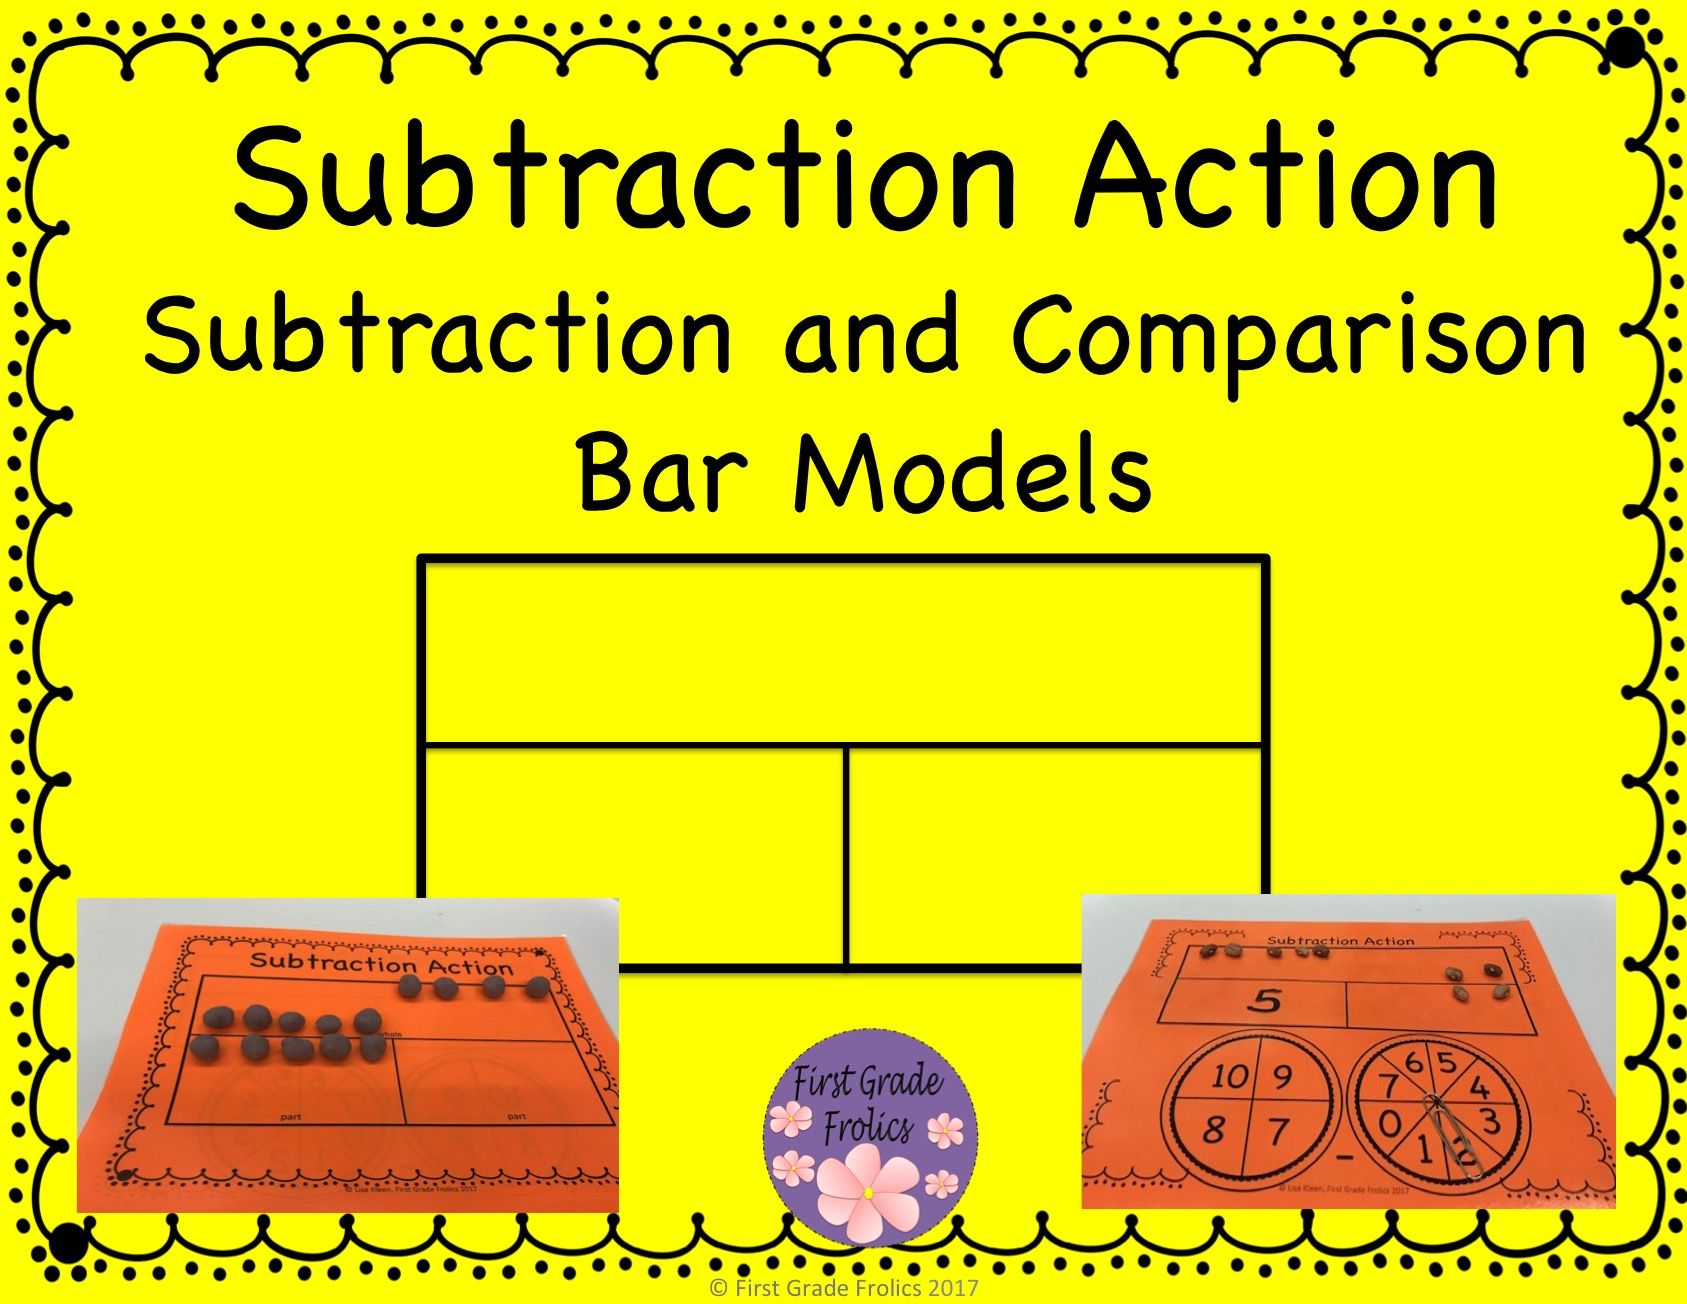 hight resolution of Subtraction Action Bar Models from First Grade Frolics   Subtraction